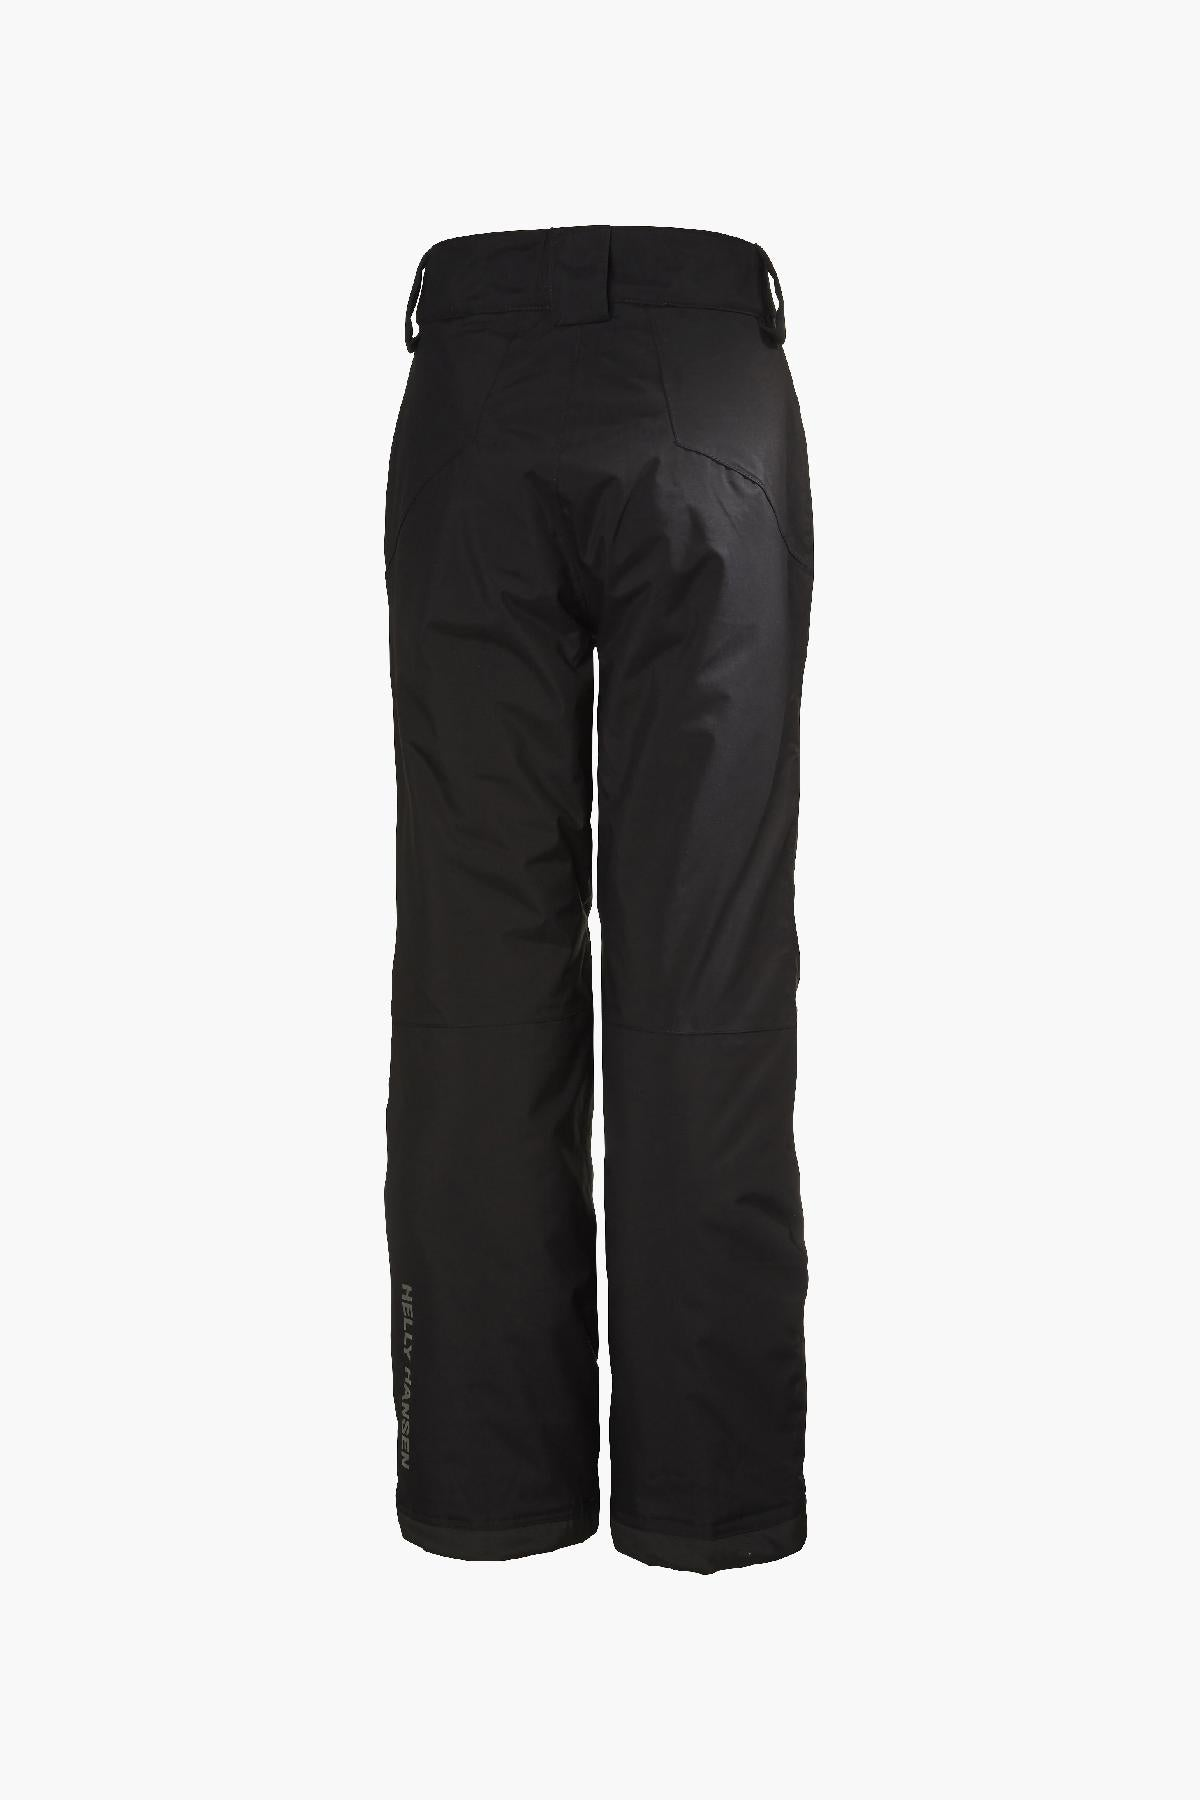 Helly Hansen Jr Legendary Pant - Black